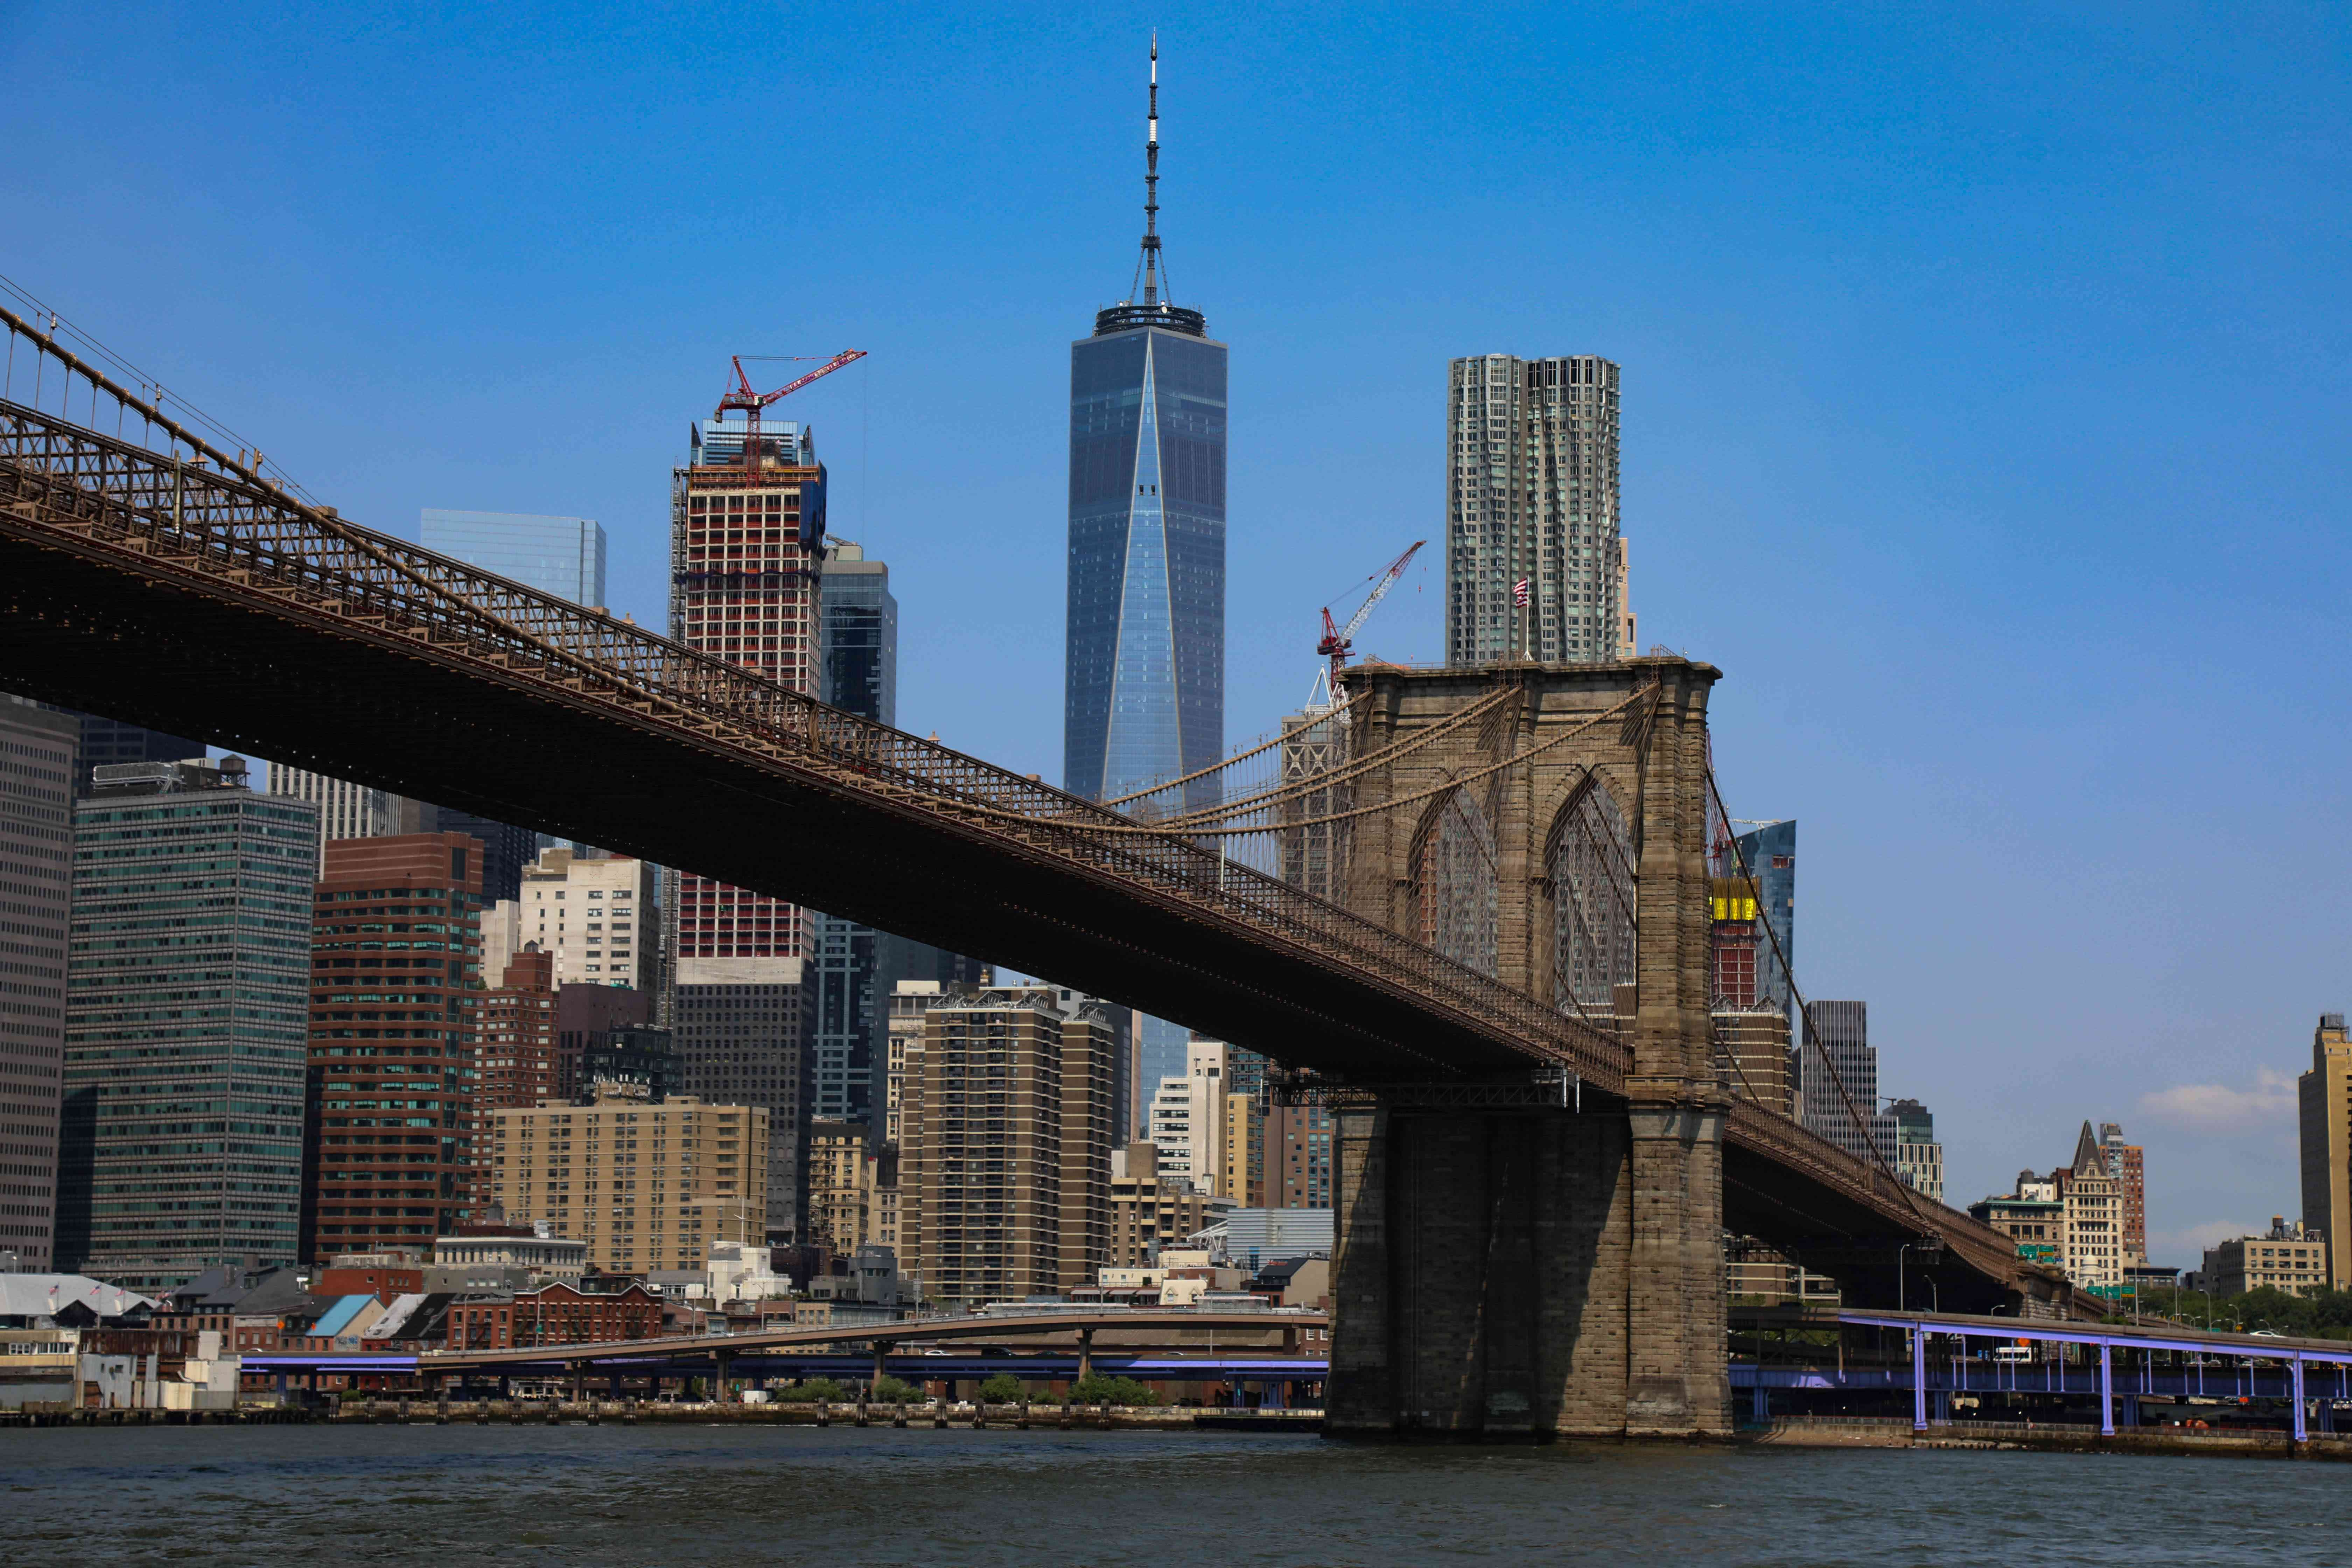 A view of the Brooklyn Bridge with the Manhattan skyline behind it.